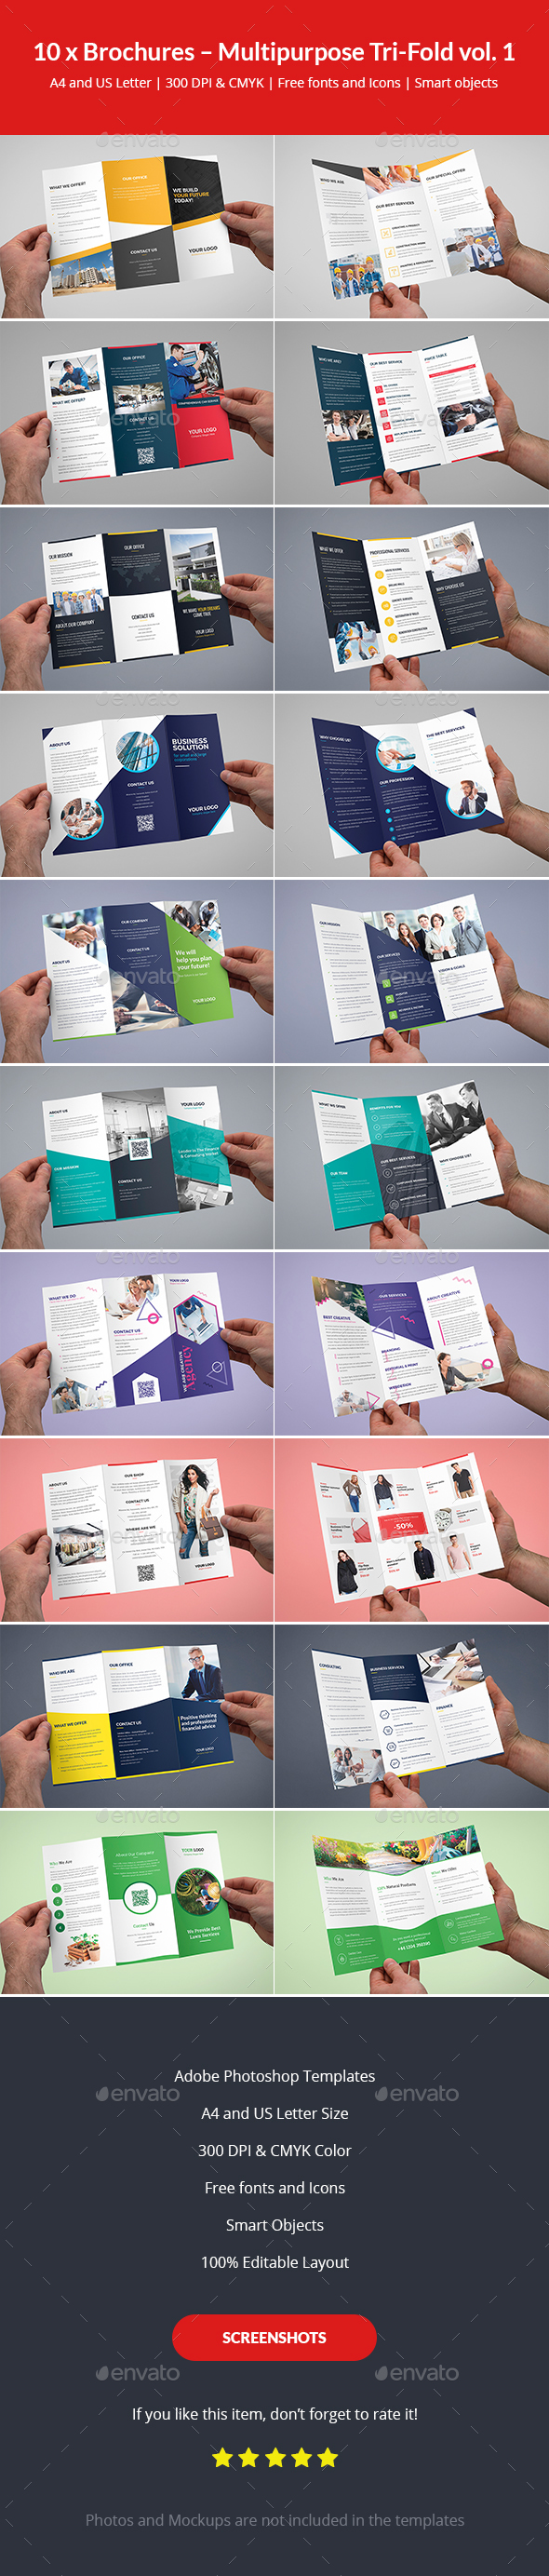 Brochures – Multipurpose Tri-Fold Bundle vol. 1 - Corporate Brochures